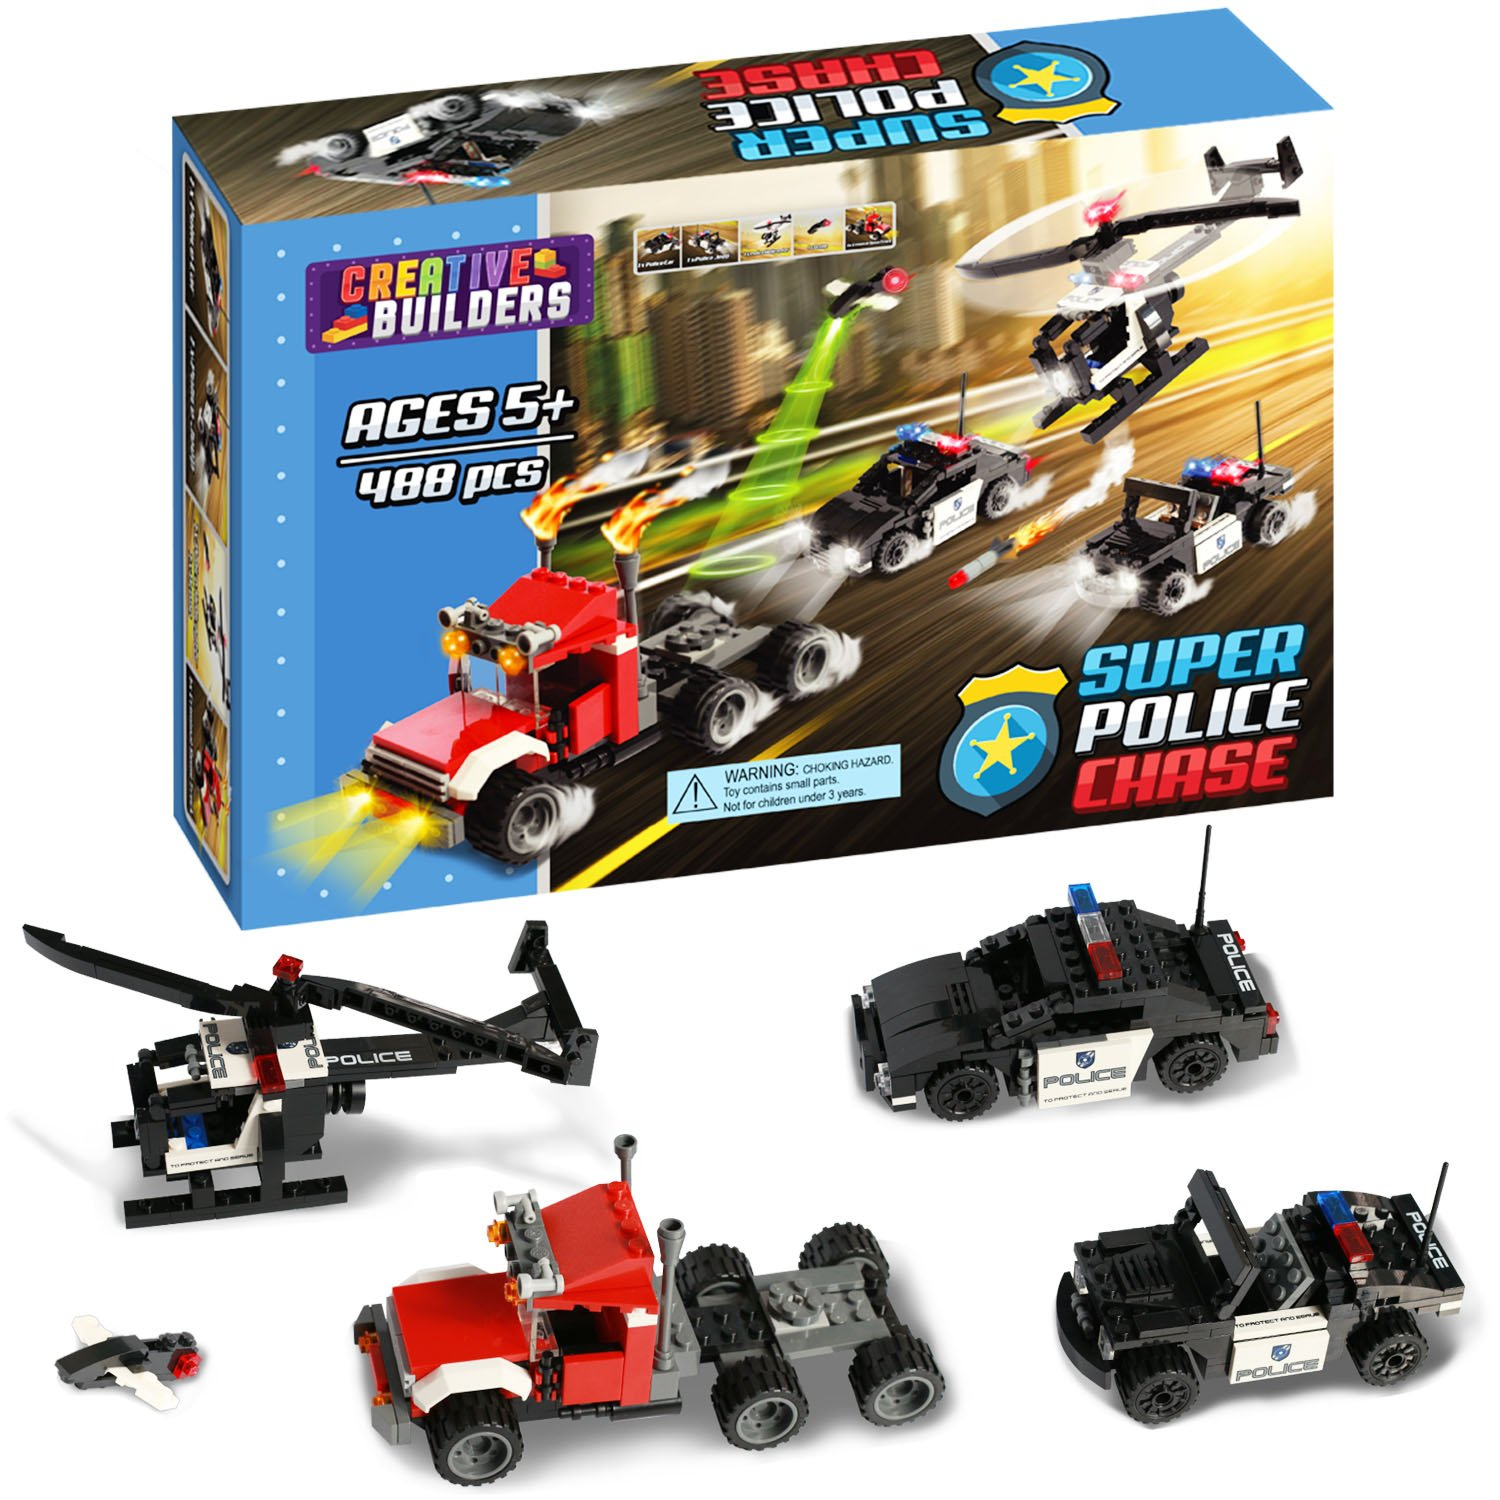 488 Pieces, Super Police Chase, Includes Car, Helicopter